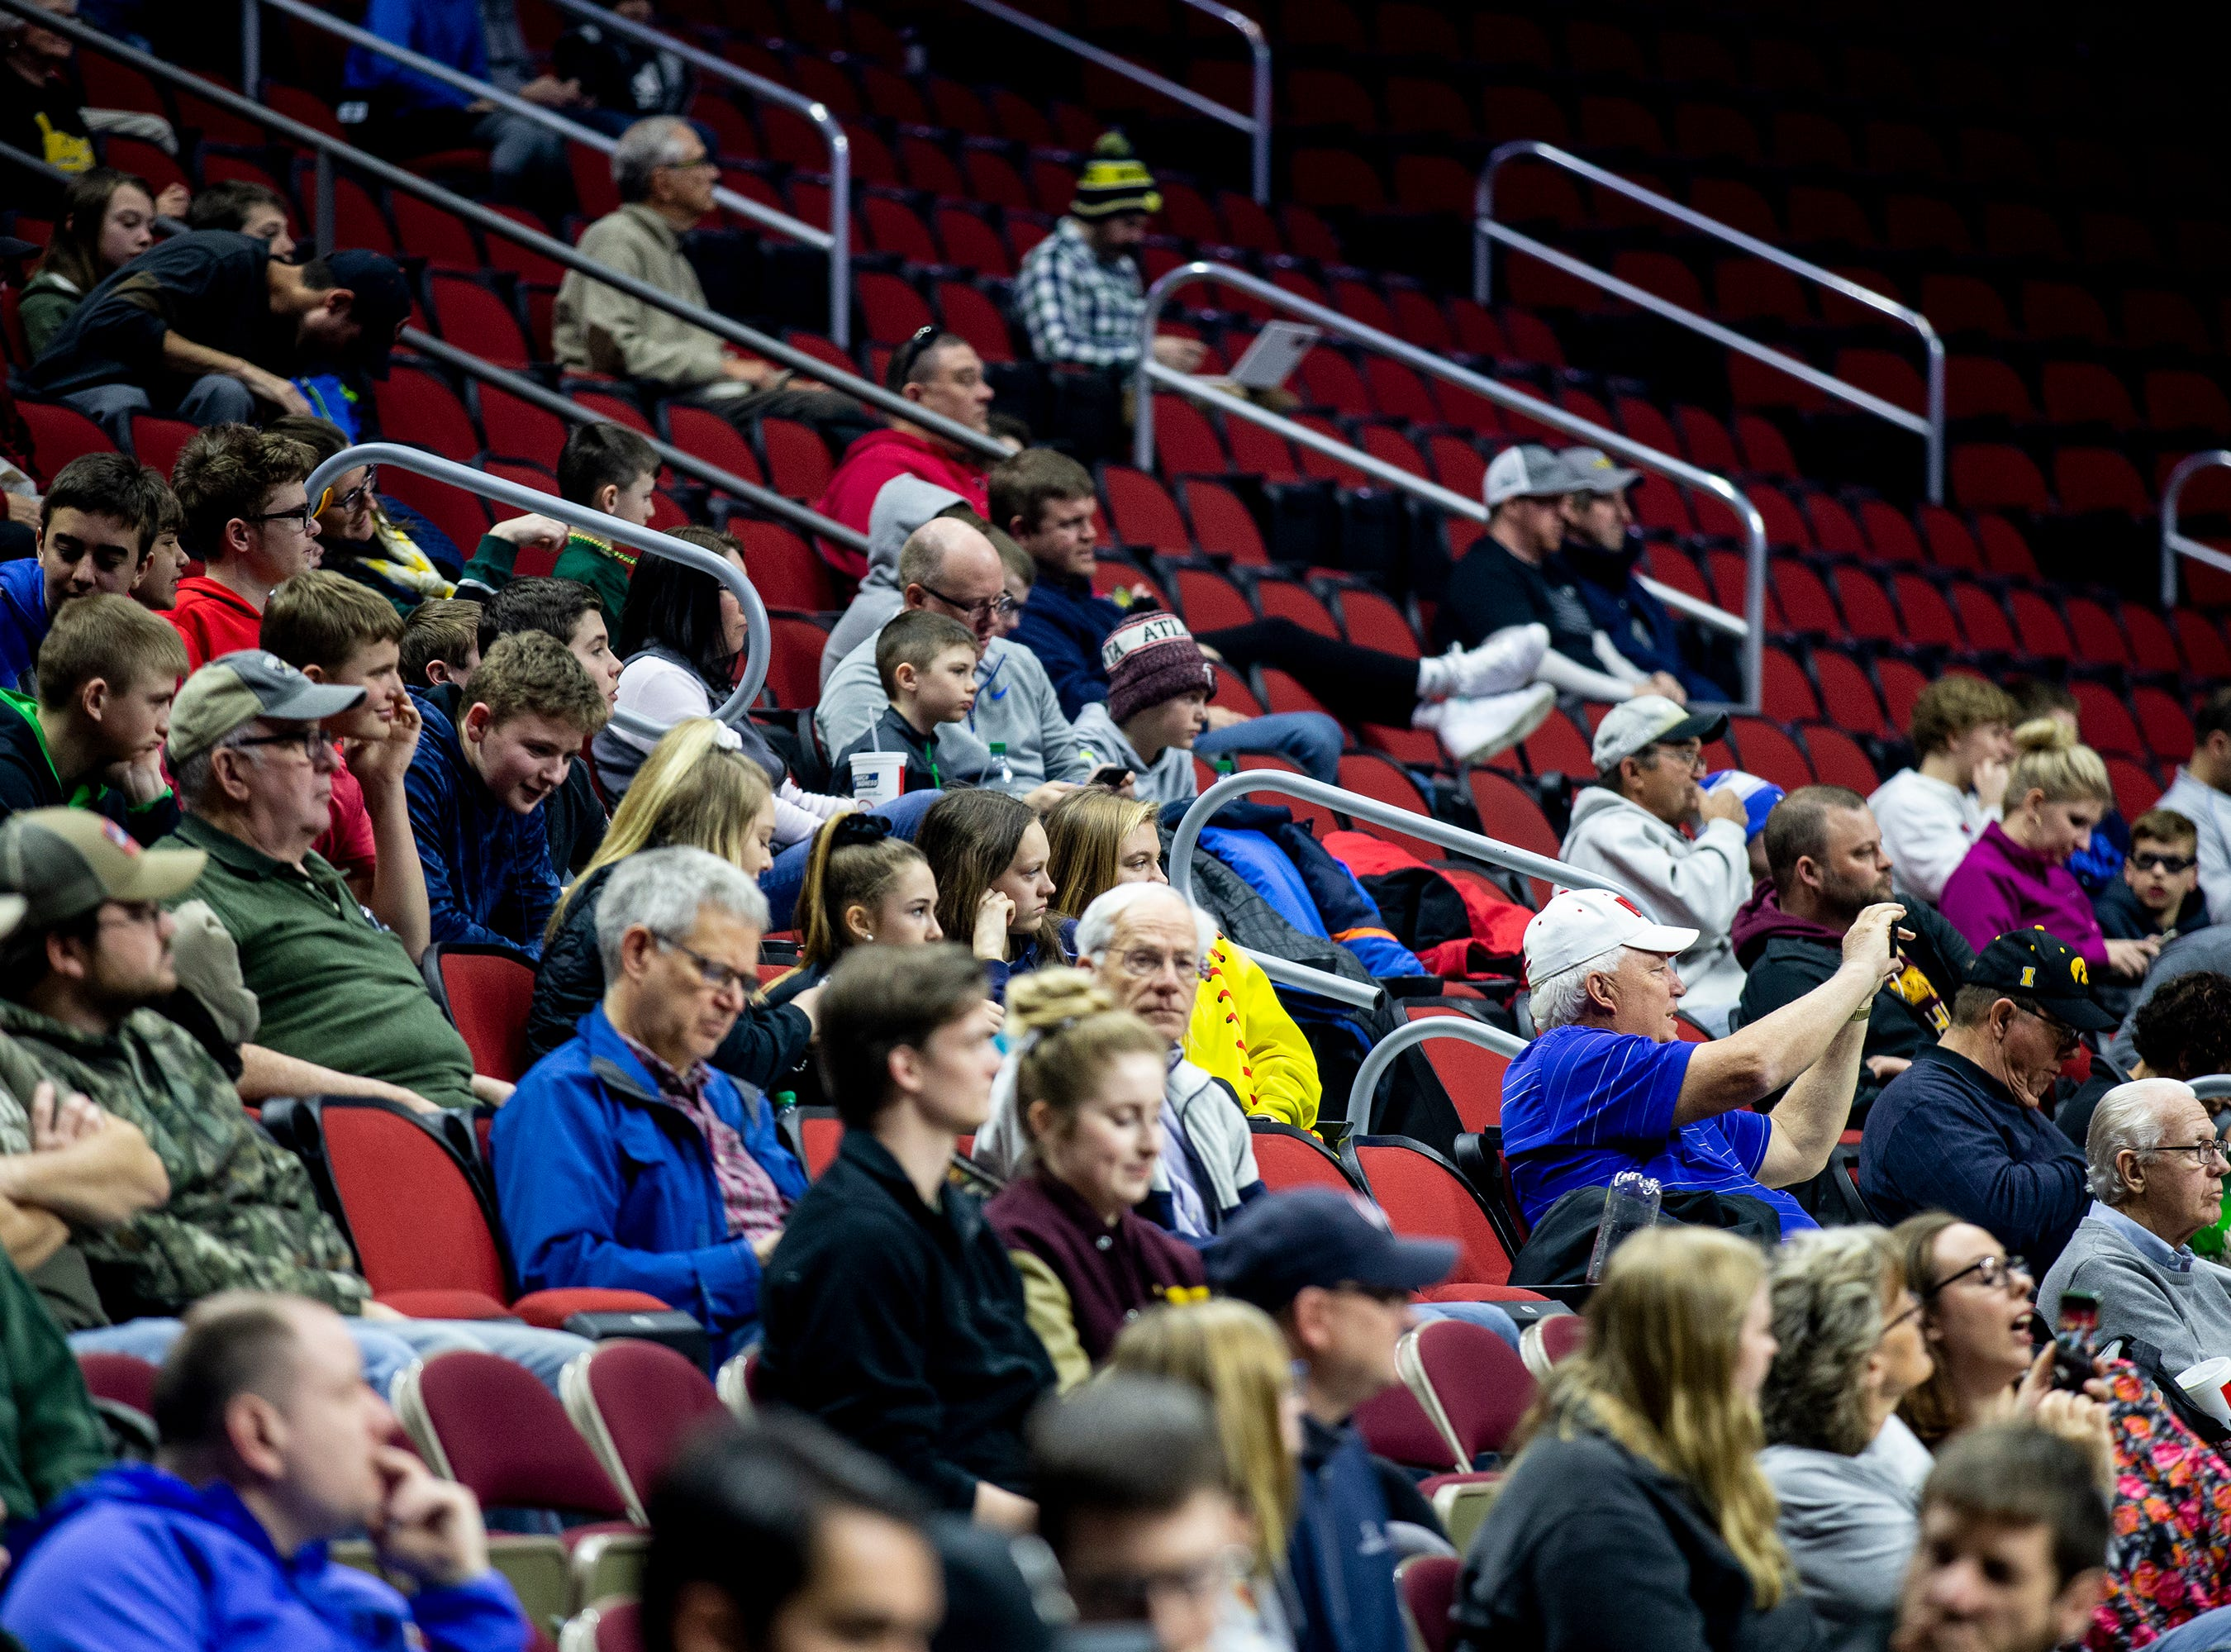 Basketball fans watch from the stands during Minnesota's open practice before the first round of the NCAA Men's Basketball Tournament on Wednesday, March 20, 2019, at Wells Fargo Arena in Des Moines, Iowa. Minnesota will face Louisville in the first round on Thursday.